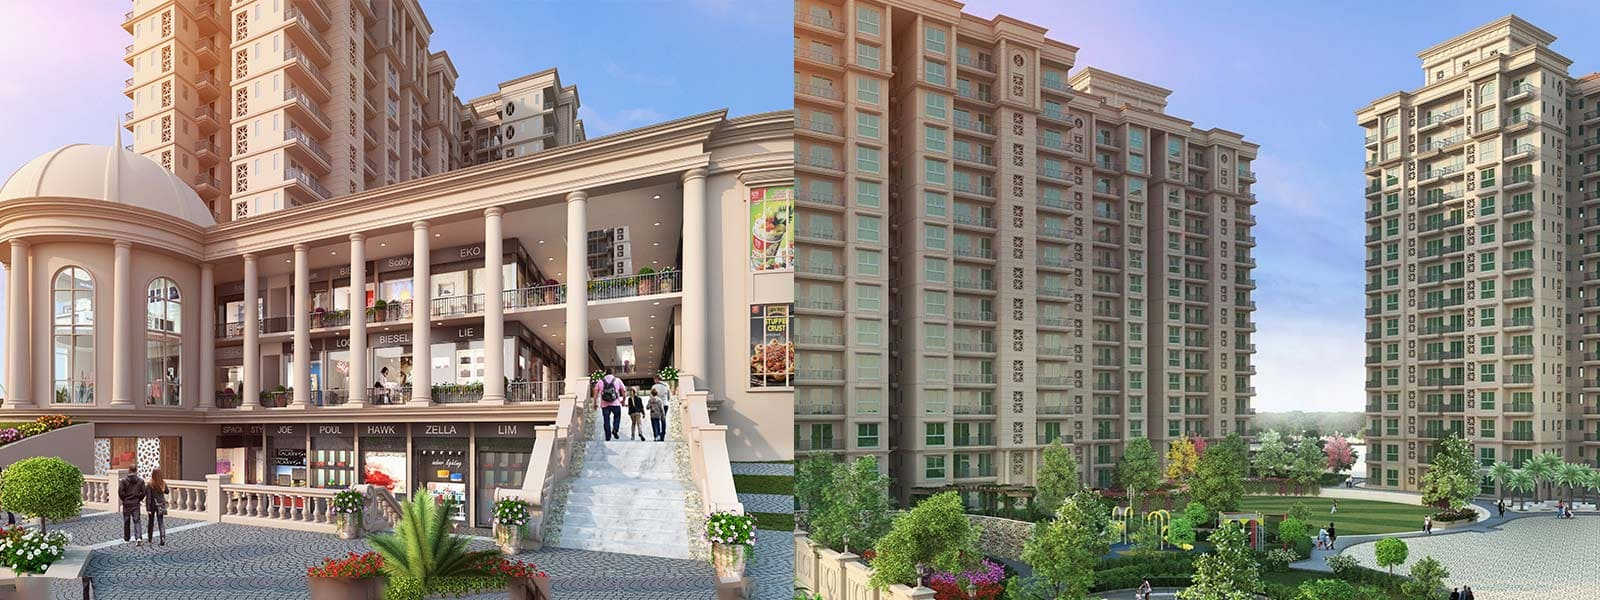 Satya Element One Projects Gurgaon